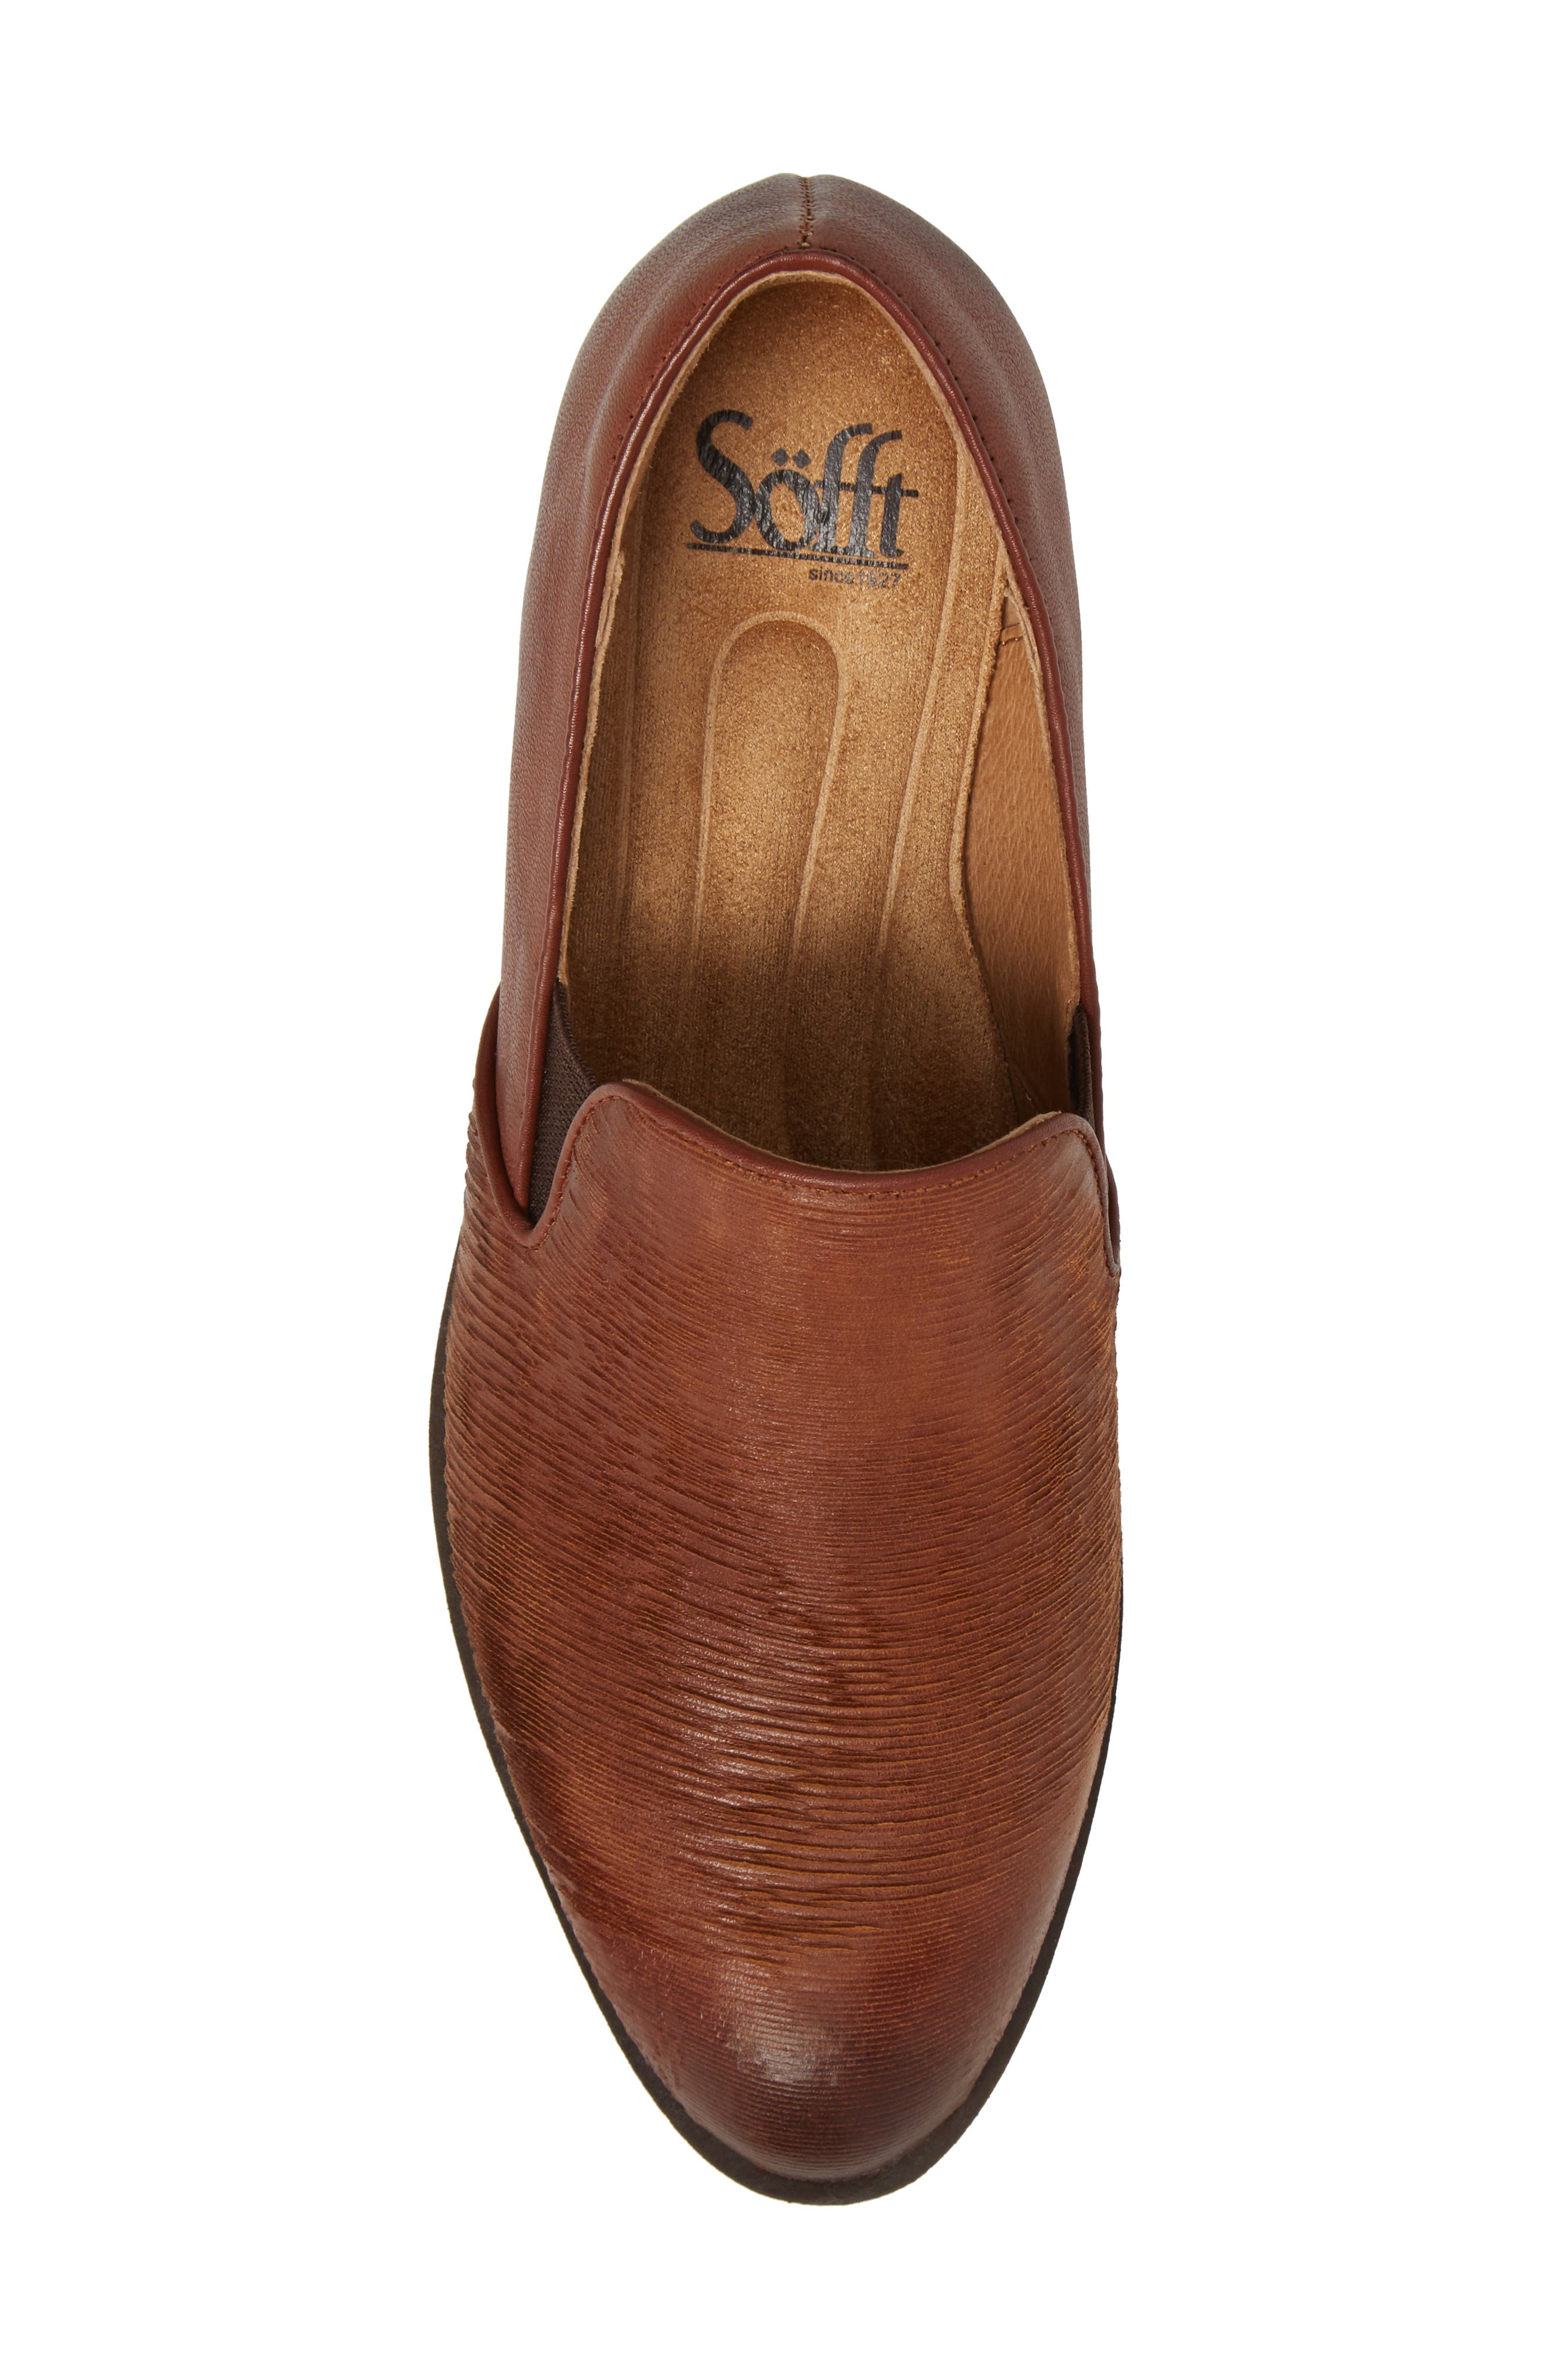 Velina Pump,                             Alternate thumbnail 5, color,                             WHISKEY/ CAFFE LEATHER